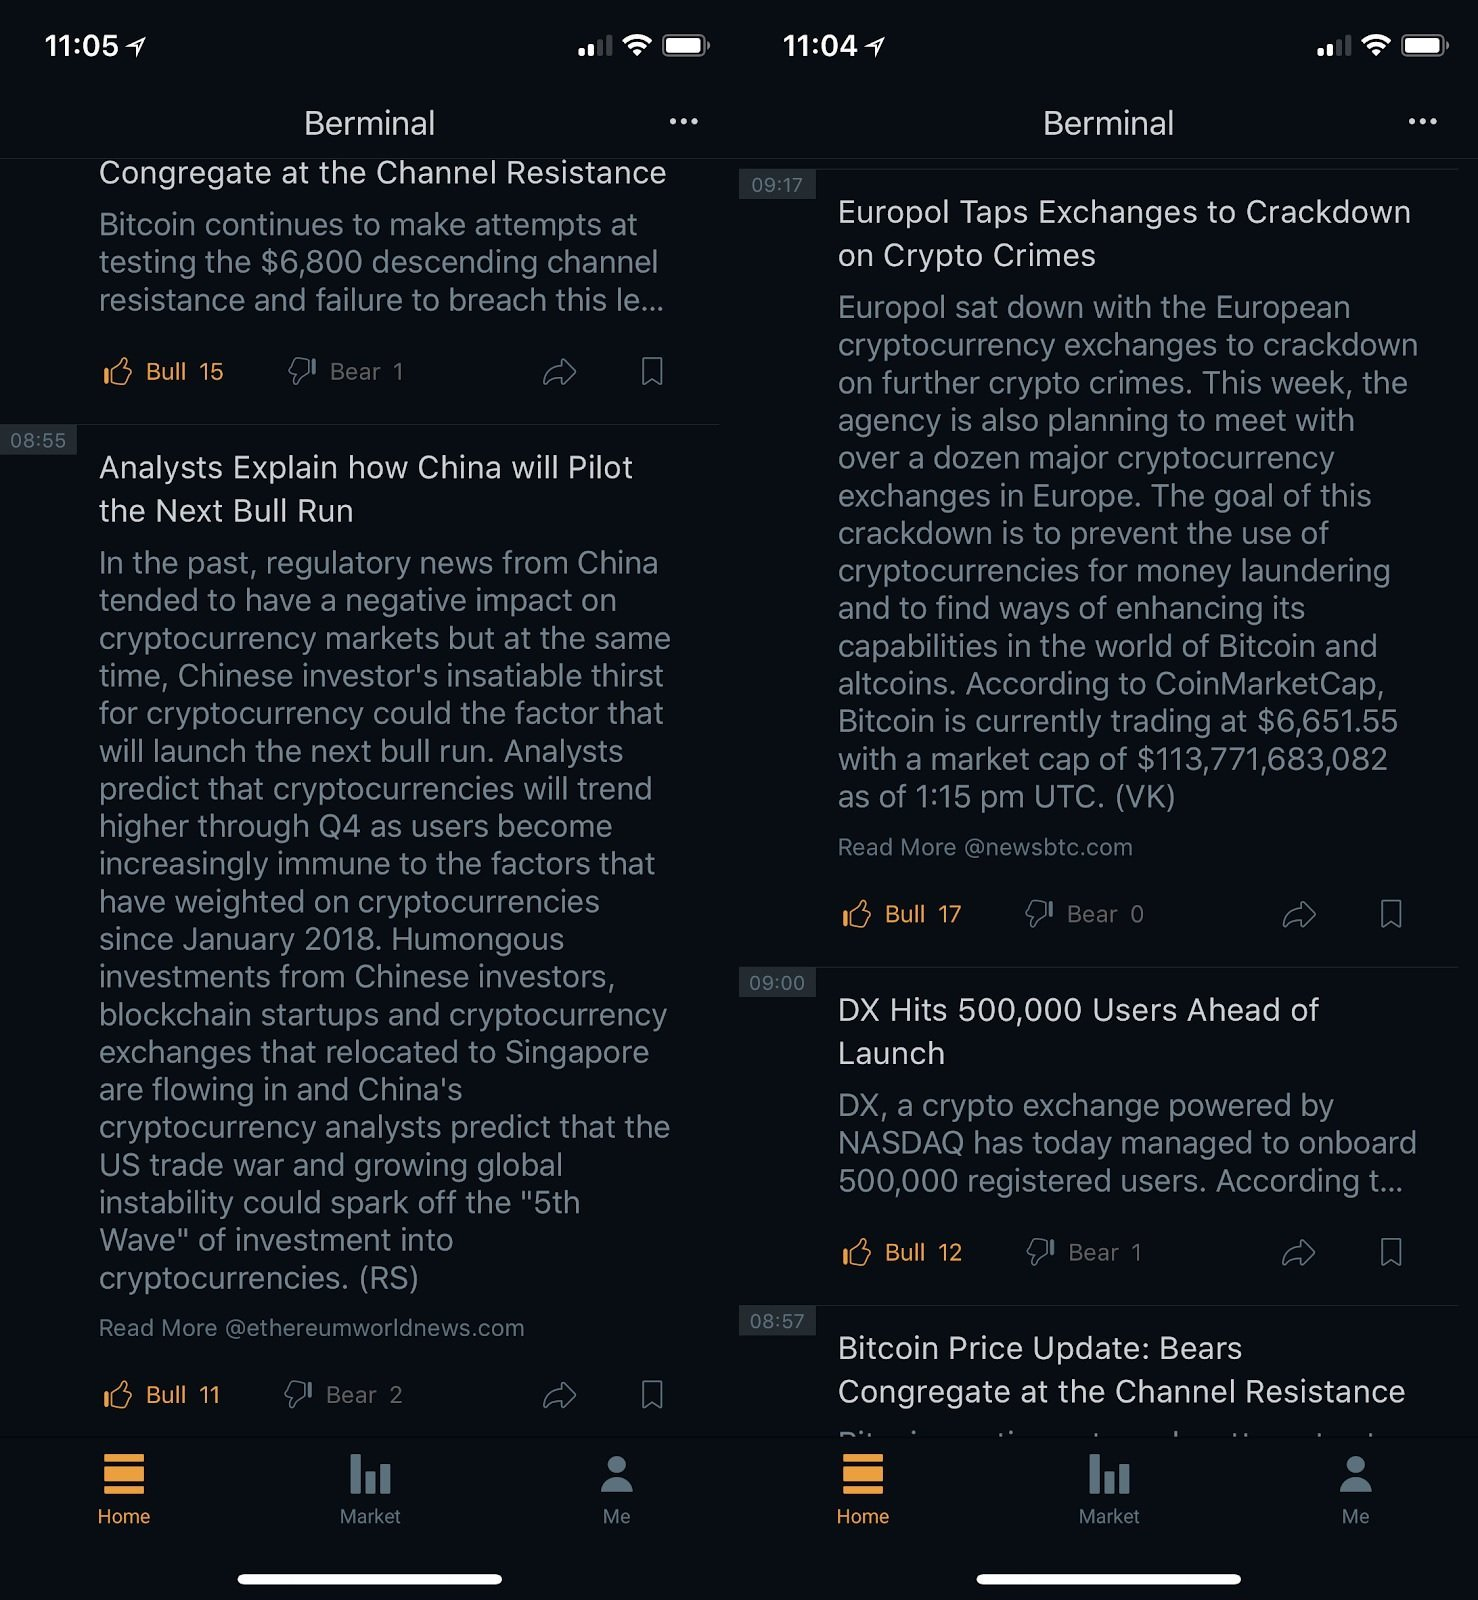 Berminal App: Your Gateway to Instant Crypto News That Affect the Crypto Markets 15